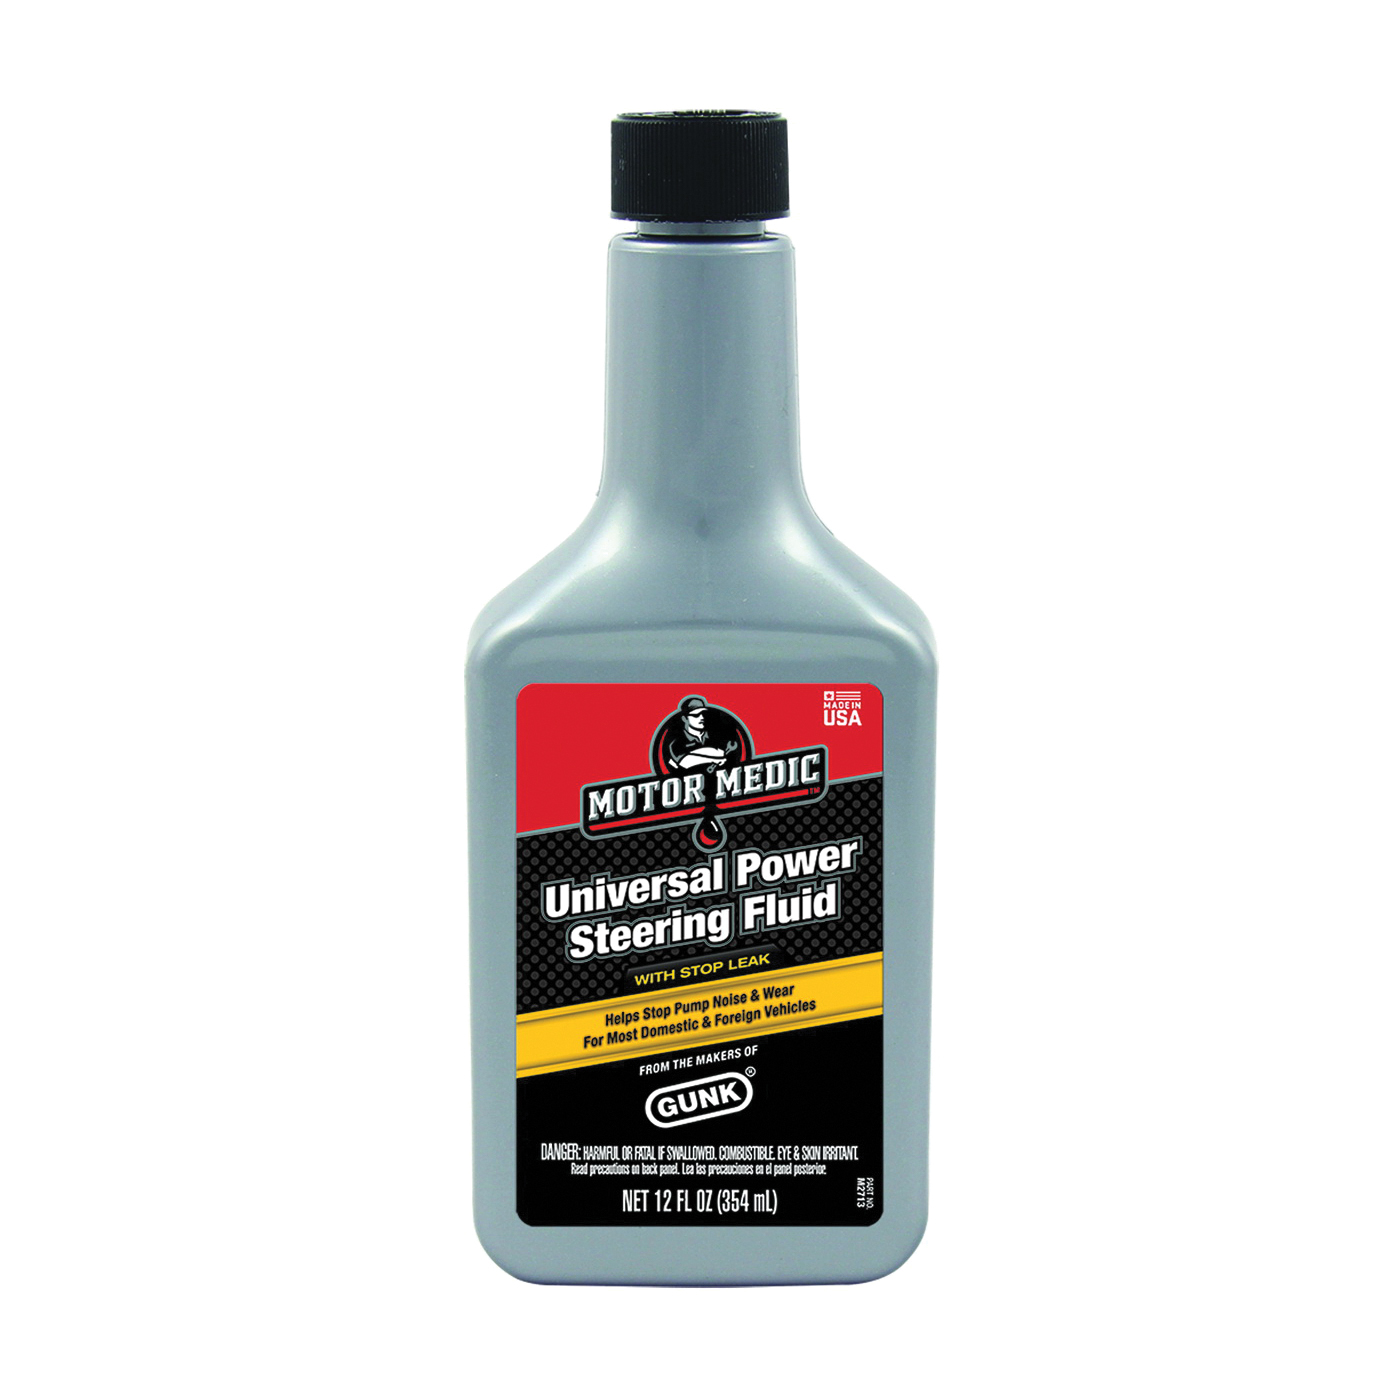 Picture of RSC M2713 Power Steering Fluid with Stop Leak Yellow, 12 oz Package, Bottle